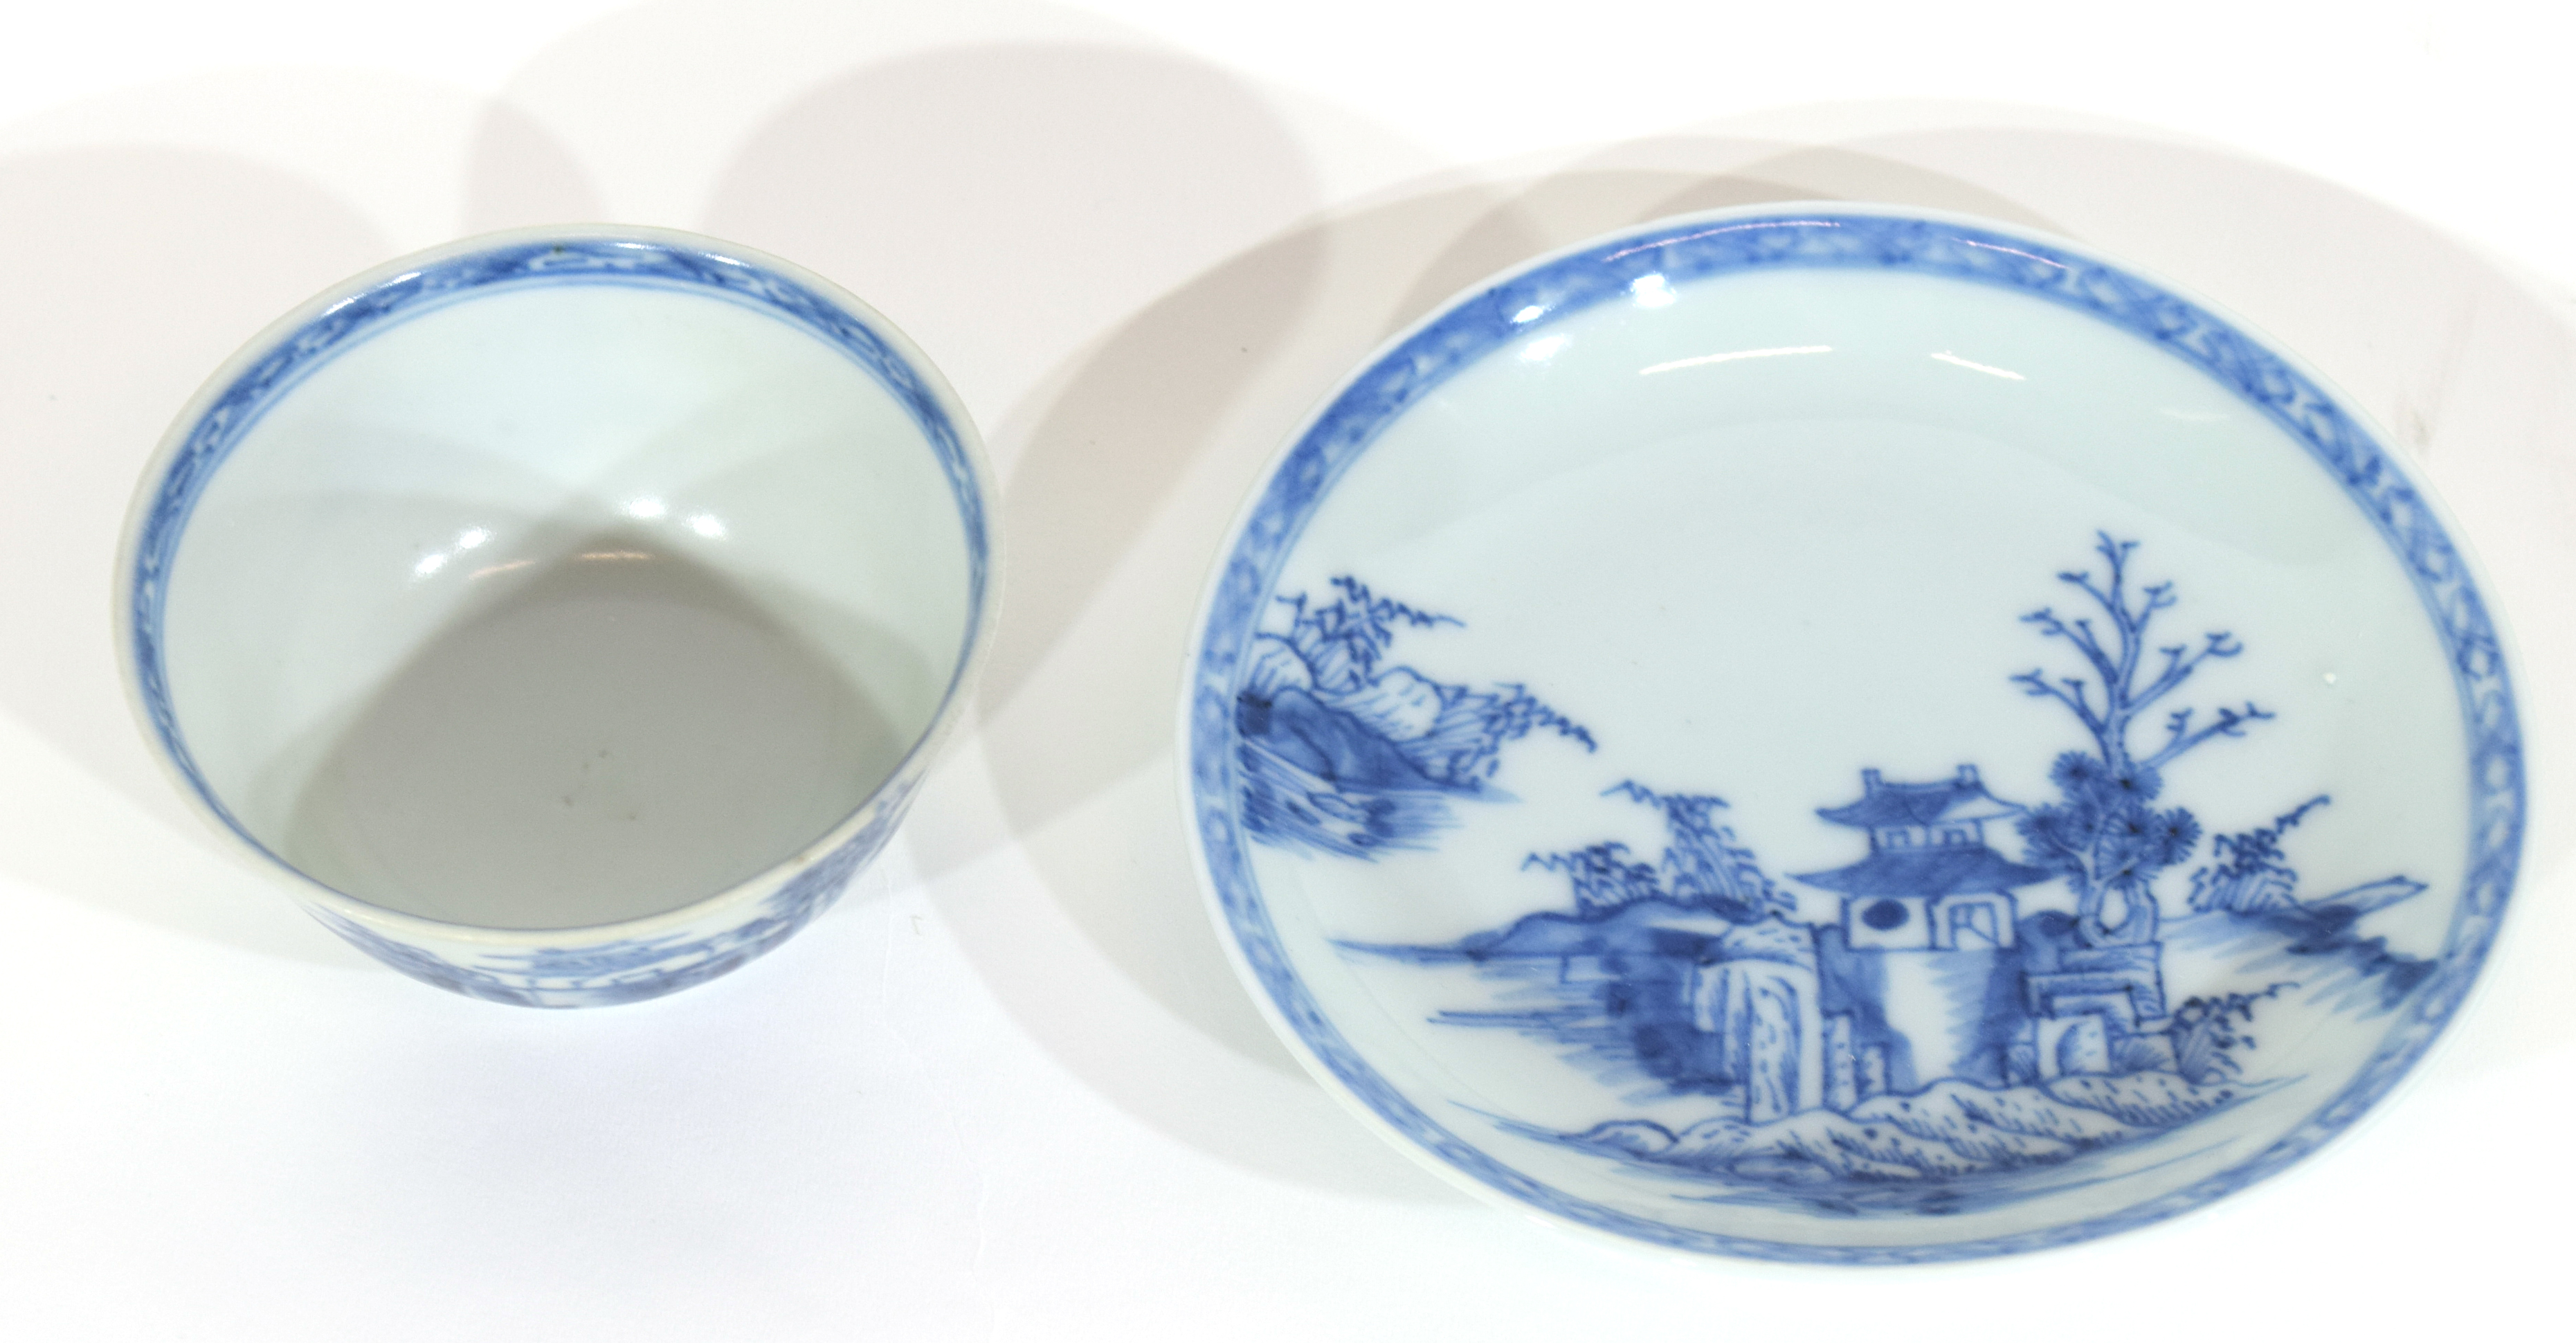 18th century Chinese porcelain Nanking Cargo tea bowl and saucer - Image 6 of 15